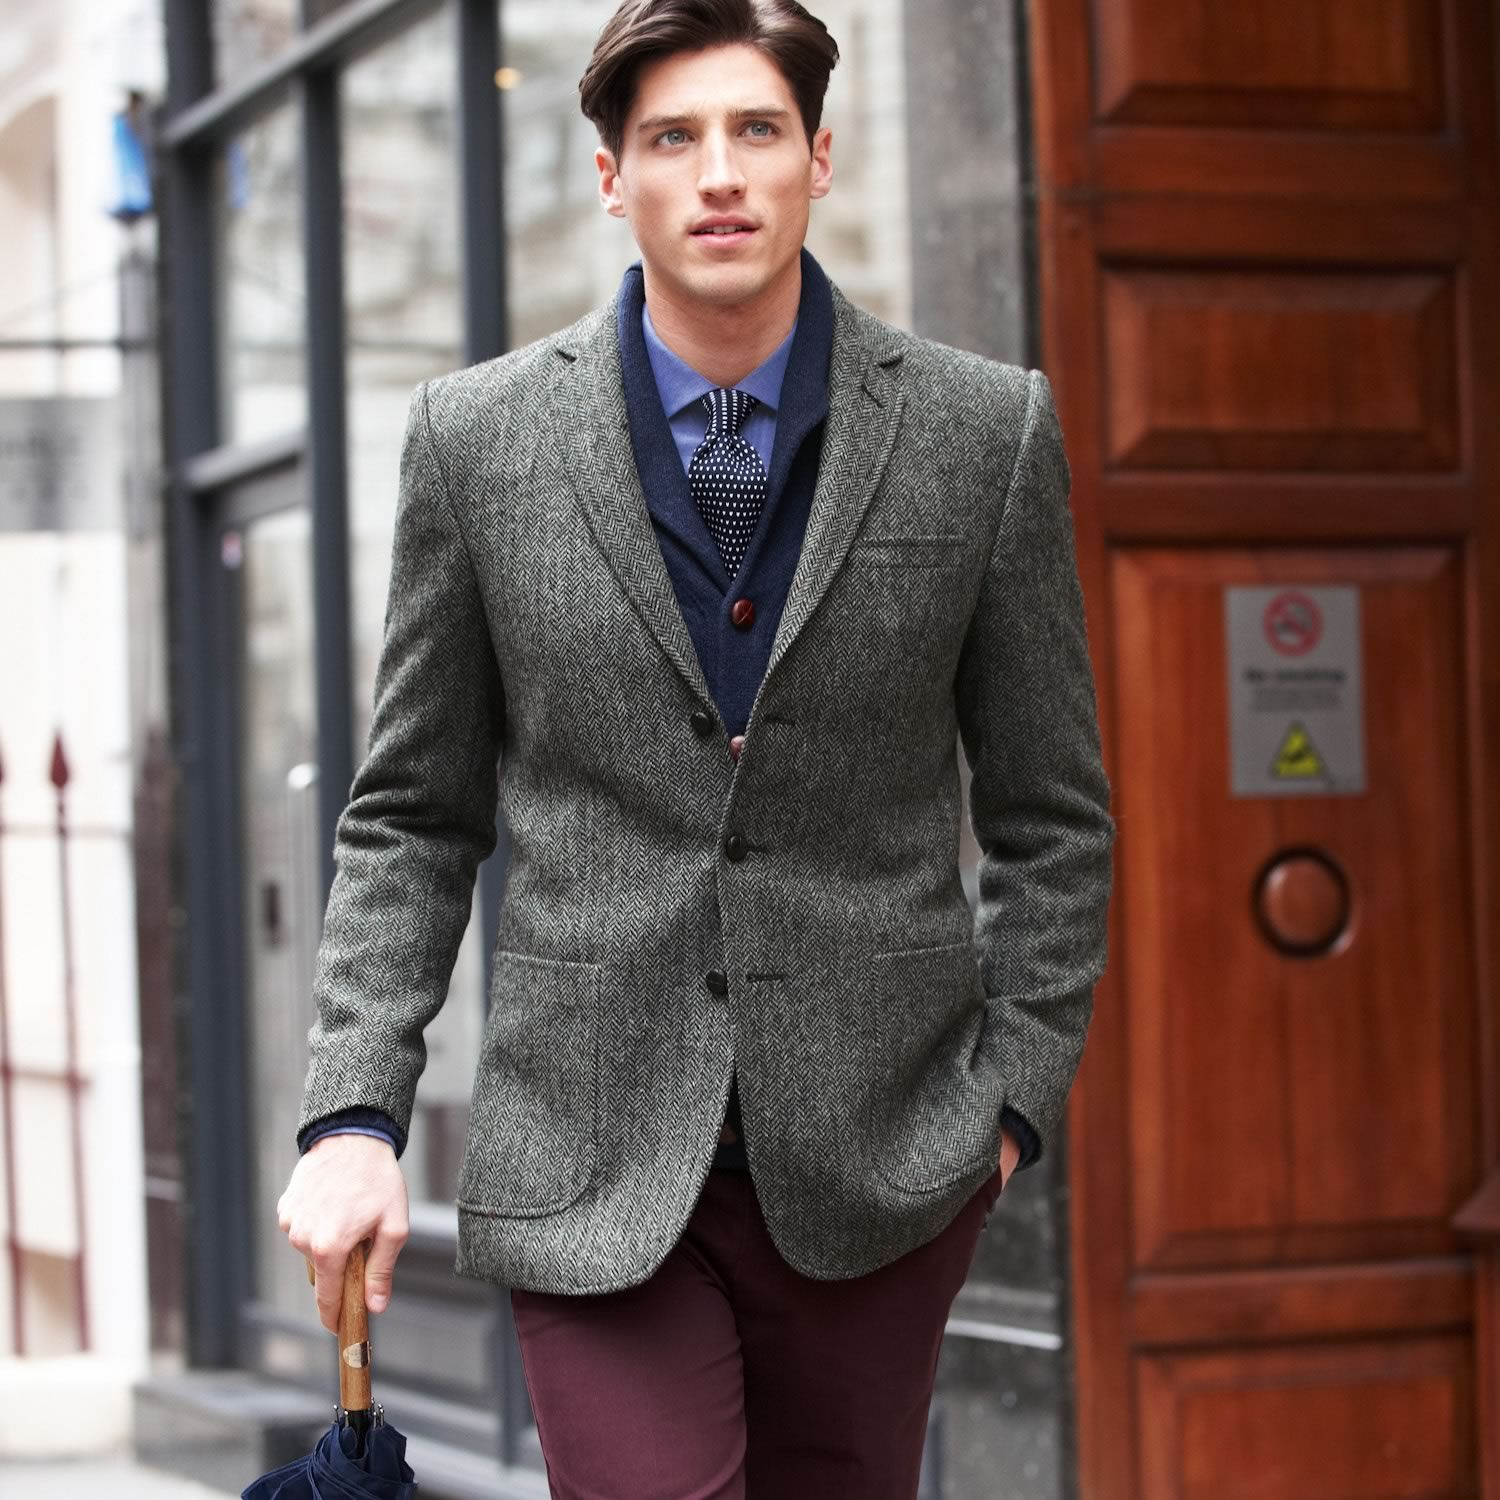 harris tweed jacket men www.designerclothingfans.com | London Brit ...